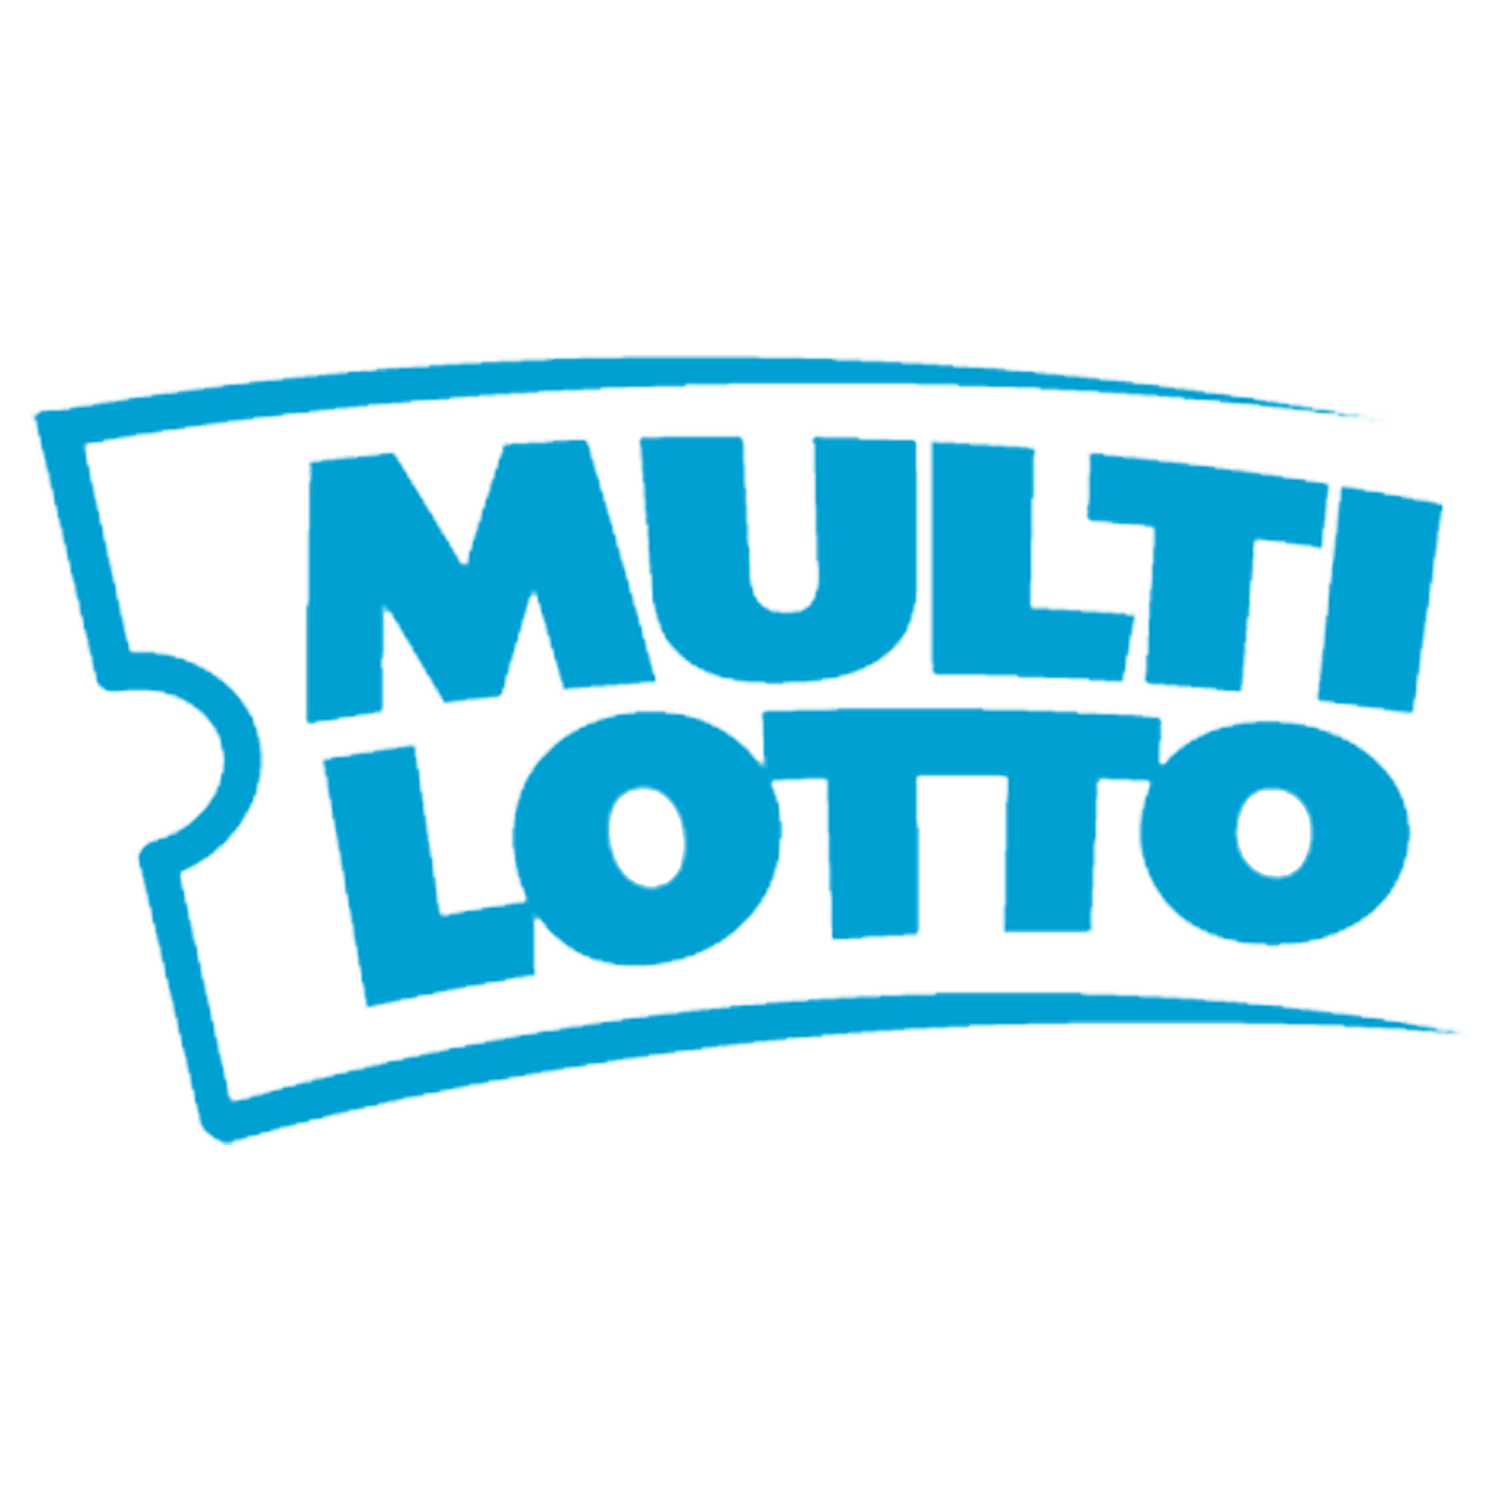 MultiLotto has its own mobile app for buying online lottery tickets in India.